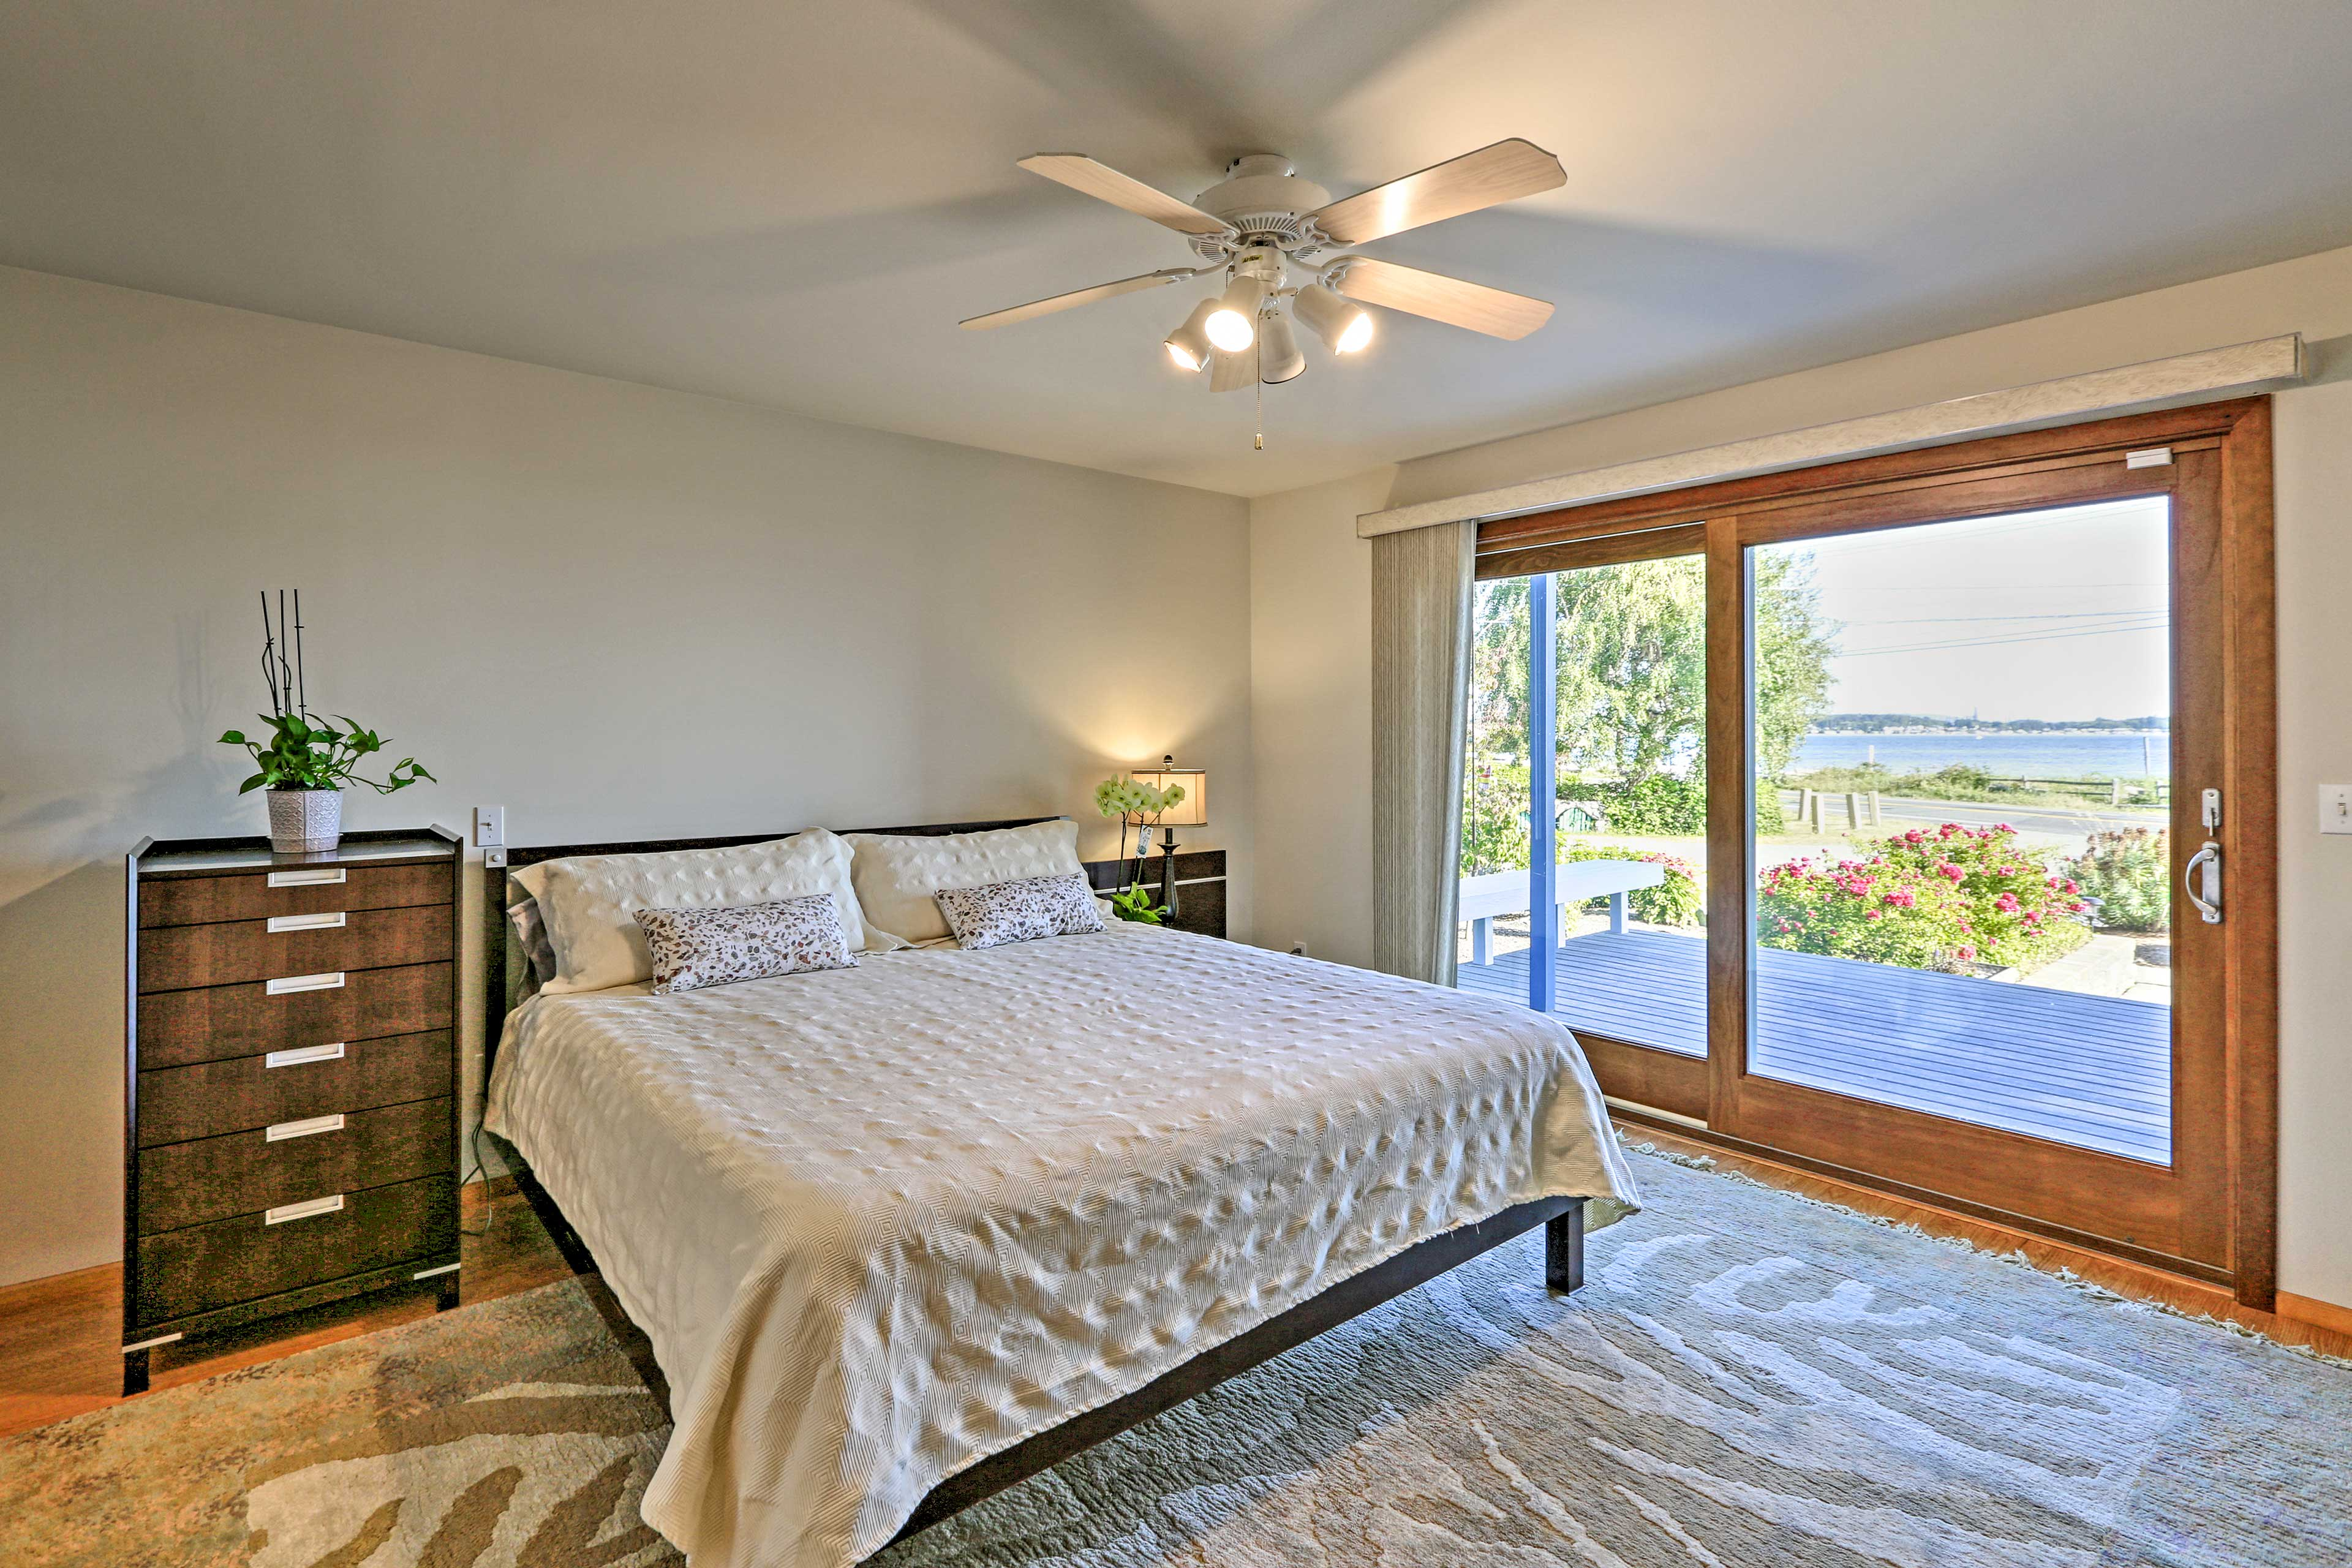 Drift off to sleep in the master bedroom's king-sized bed.